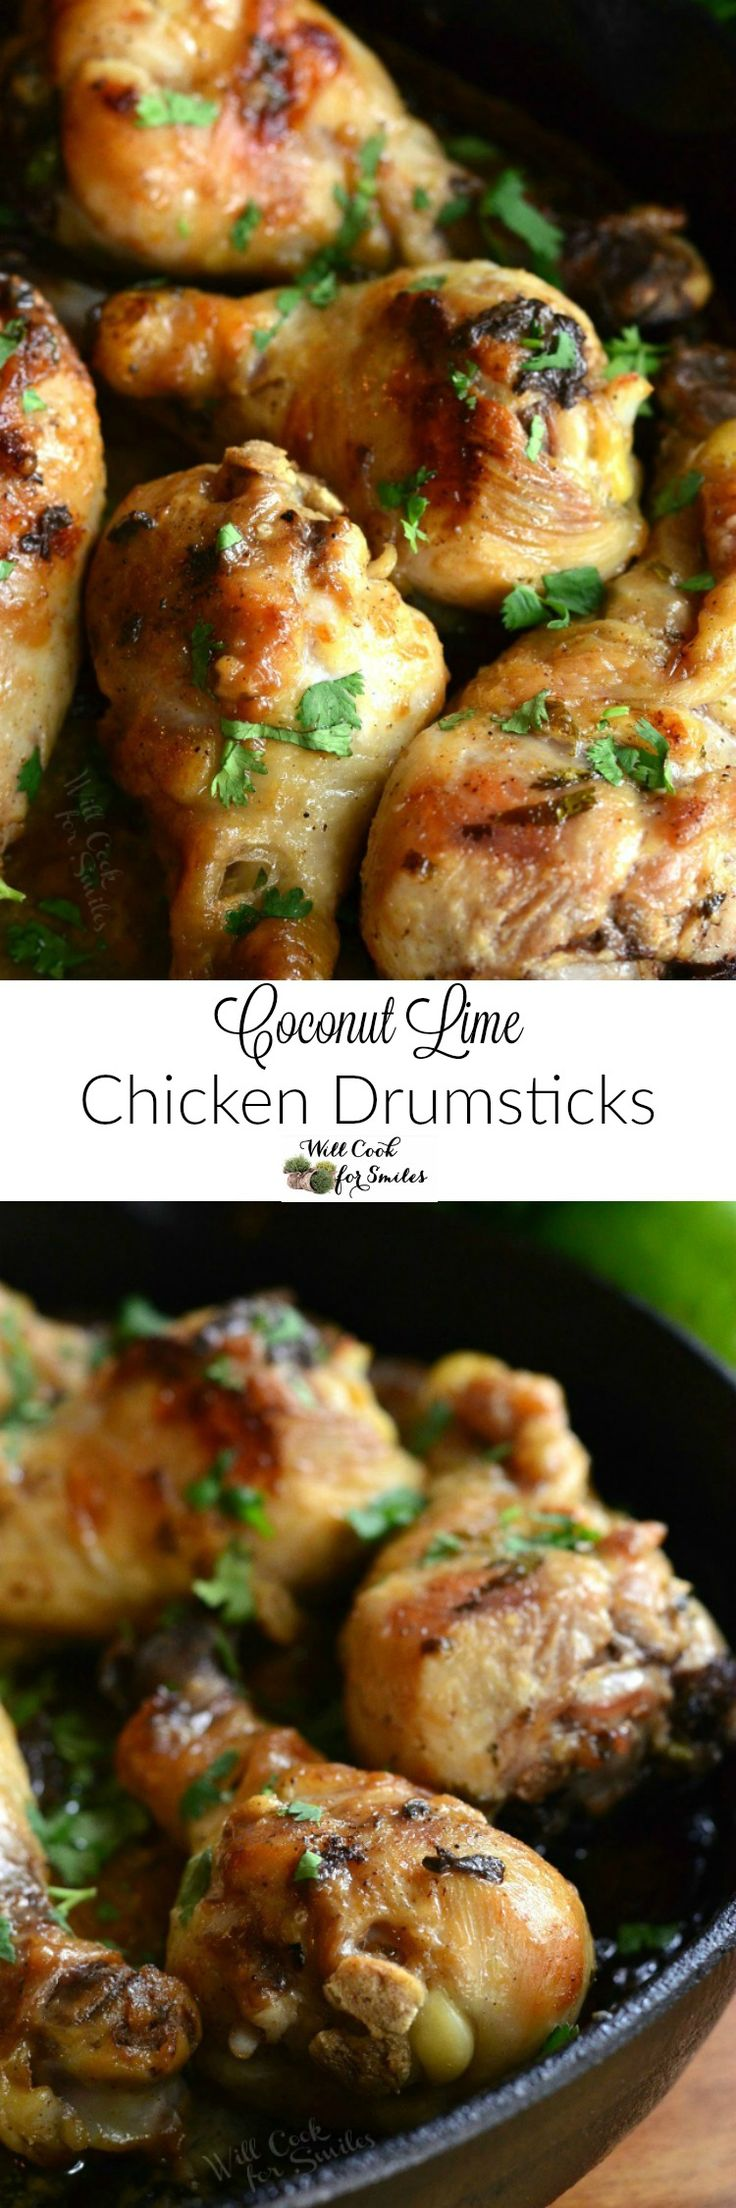 Coconut Lime Chicken Drumsticks. Juicy, flavorful chicken drumsticks made with coconut milk, fresh lime juice, cilantro, and chili powder. Great flavors with a touch of sweetness.